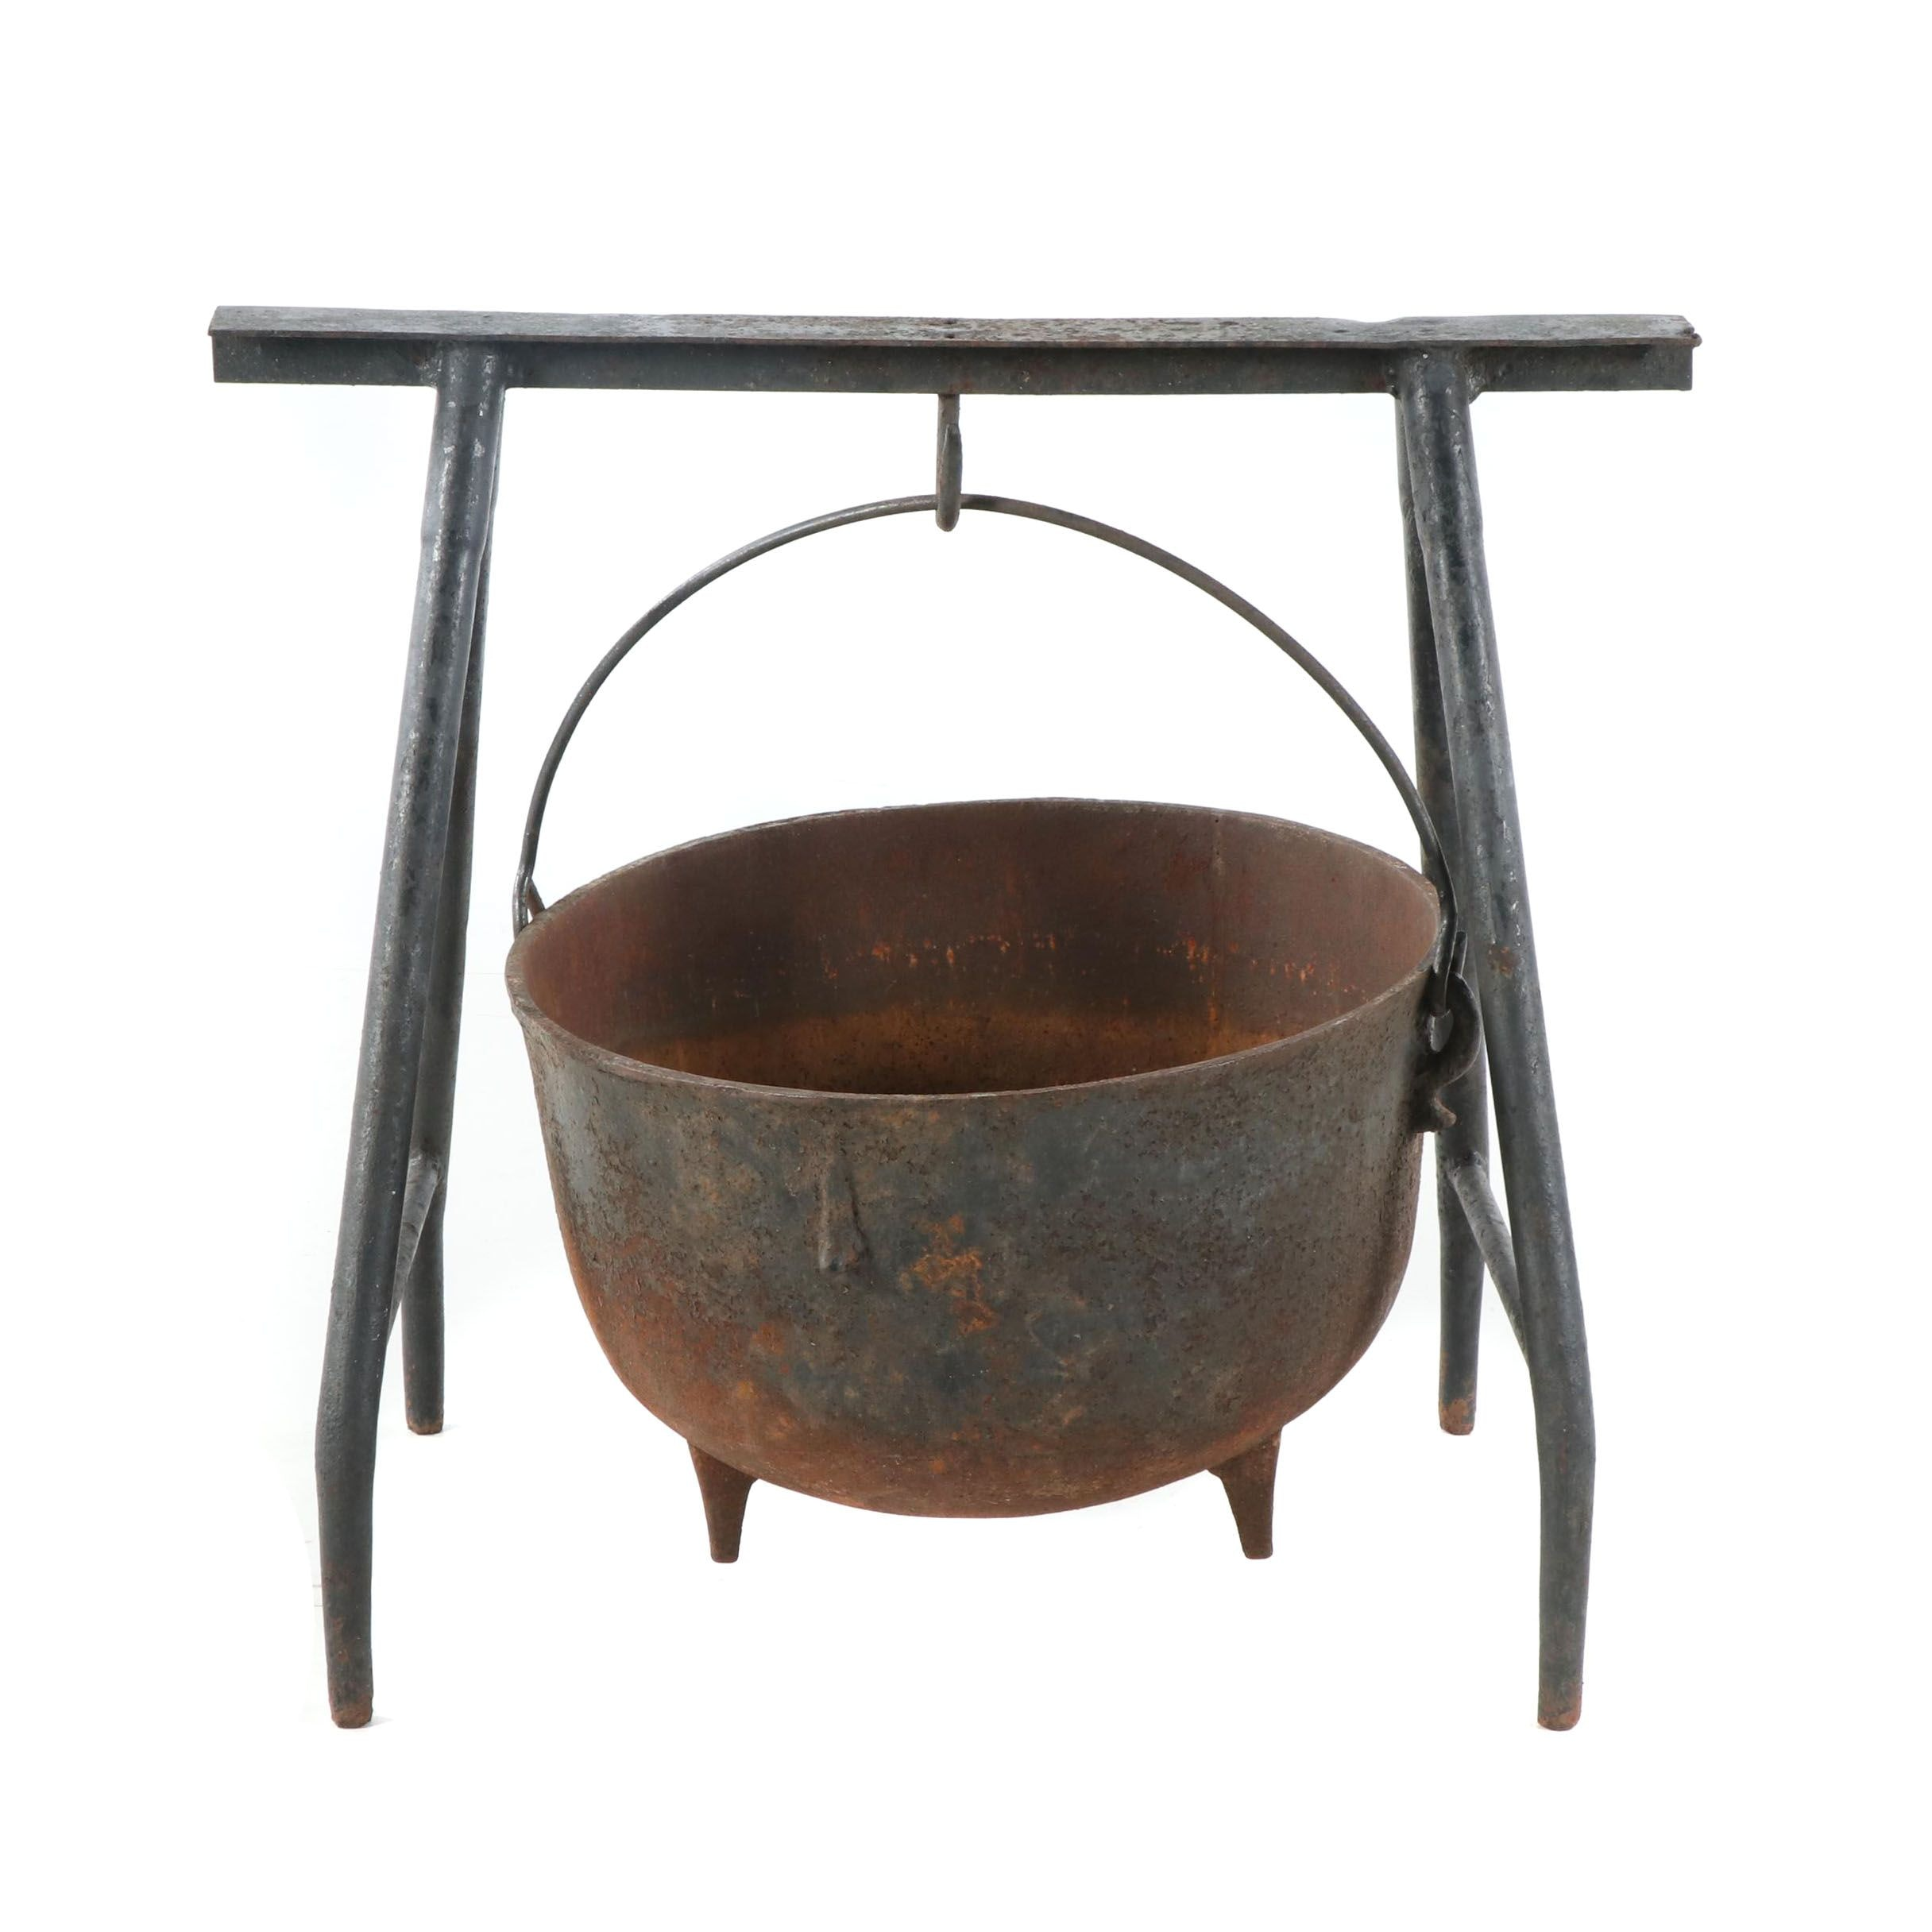 Cast Iron Cauldron and Stand, Early 20th Century